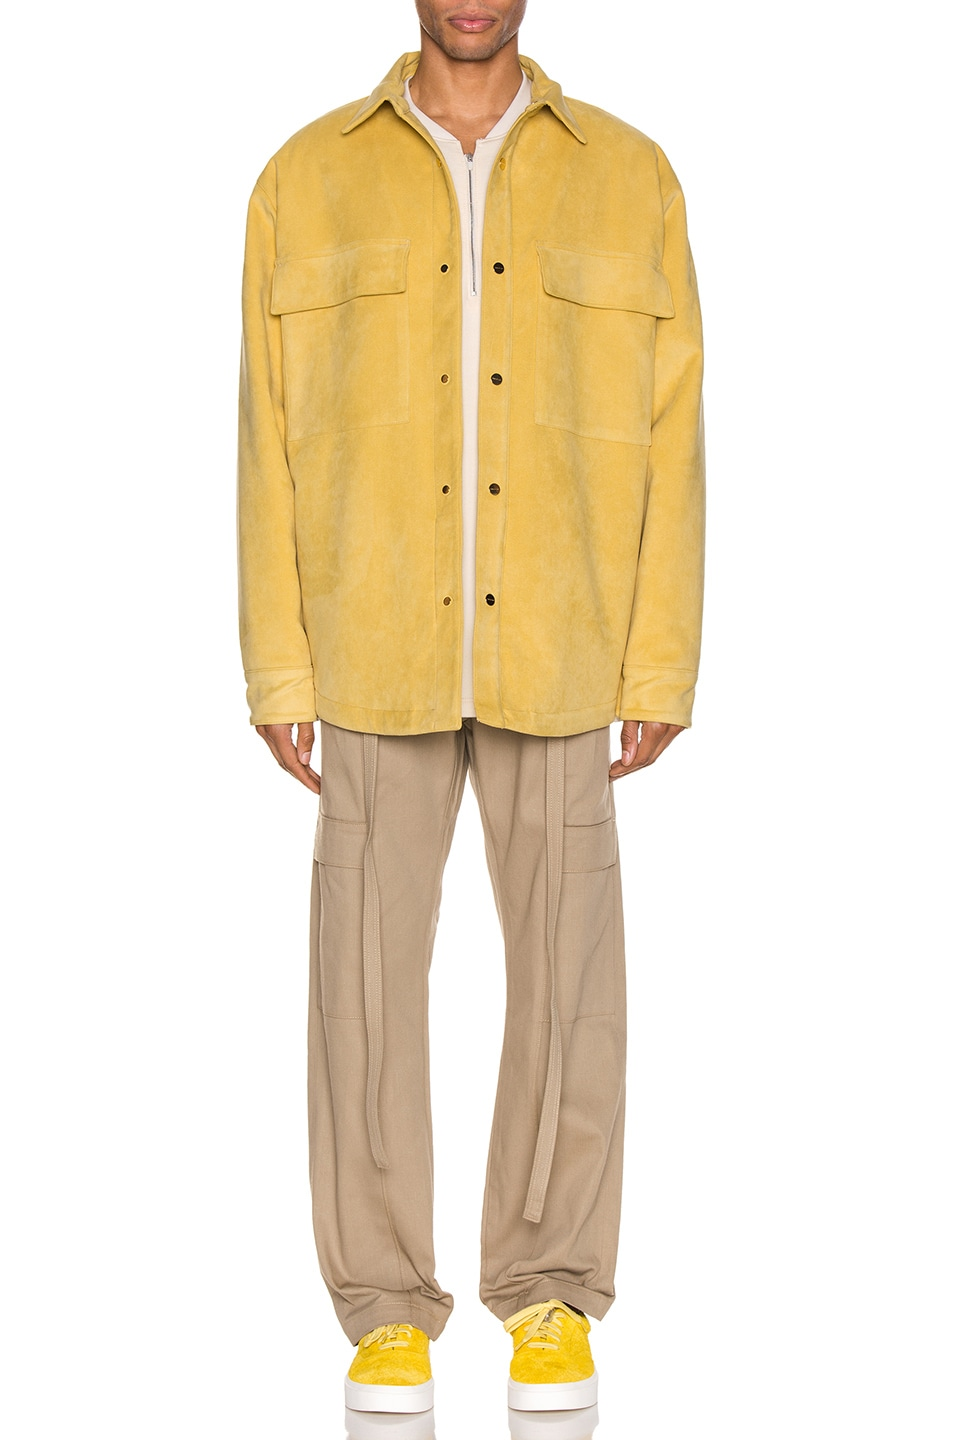 Image 5 of Fear of God Suede Shirt Jacket in Garden Glove Yellow